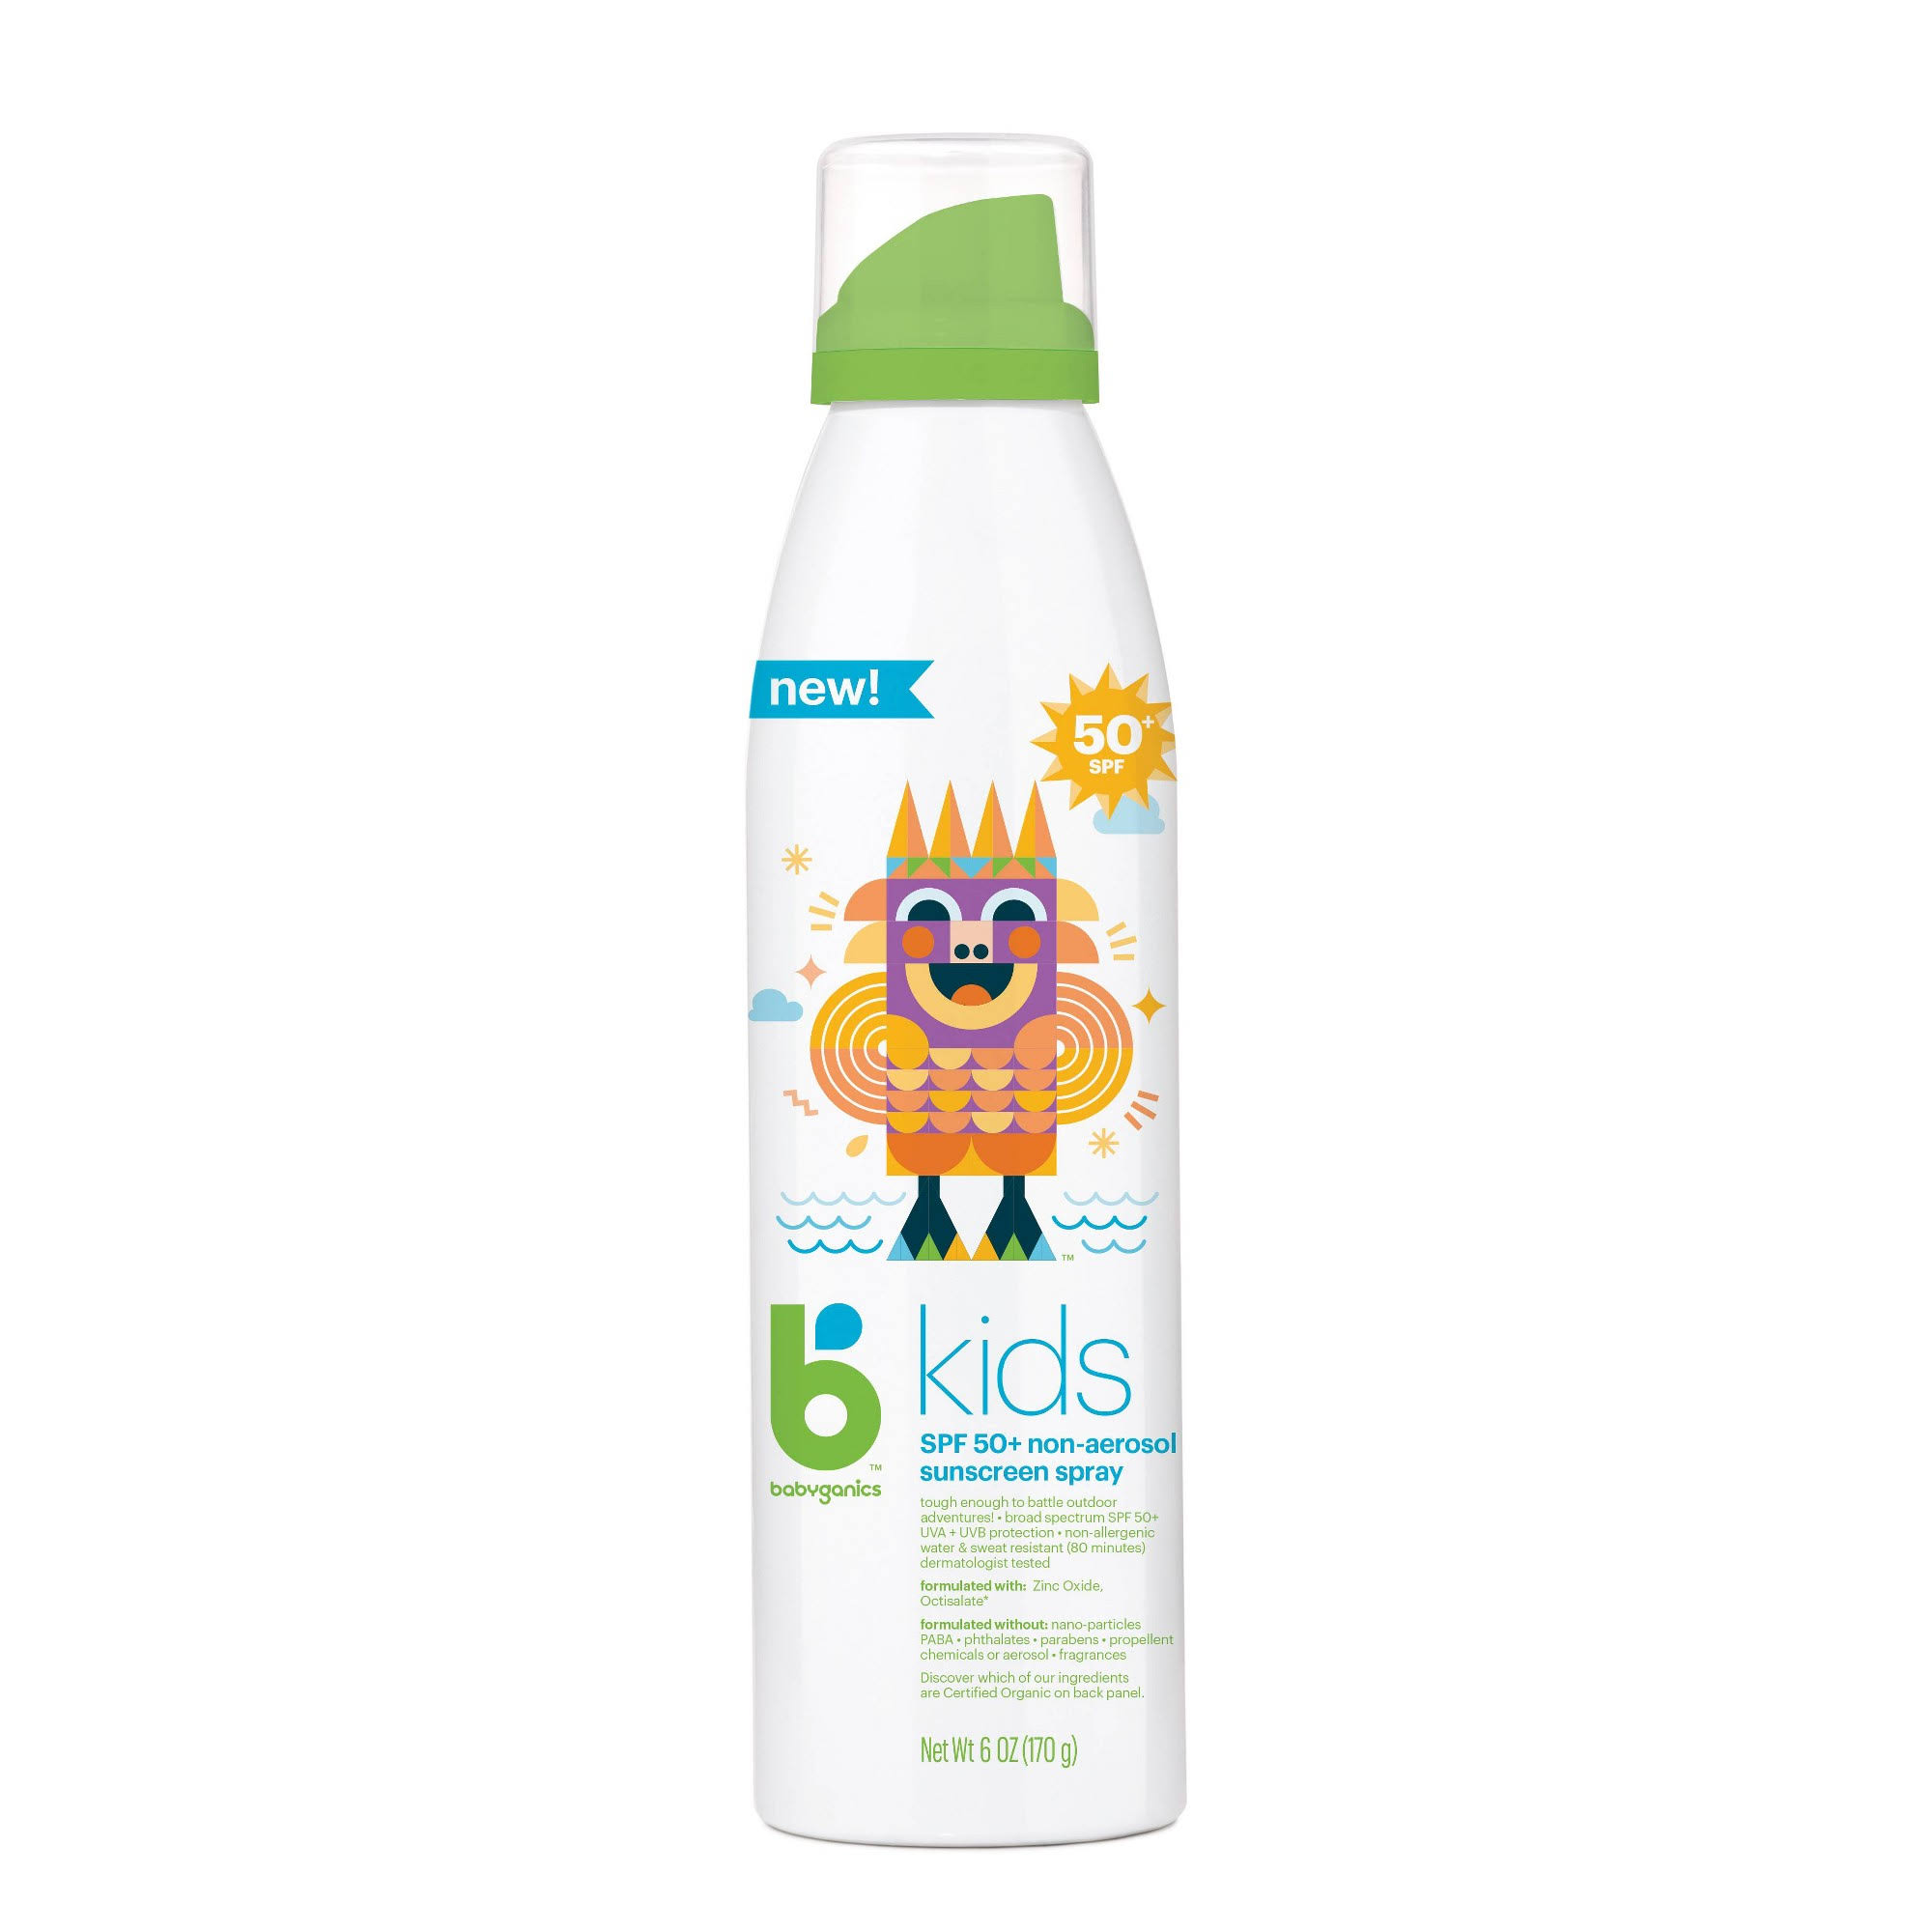 Babyganics Kids Sunscreen Spray SPF 50